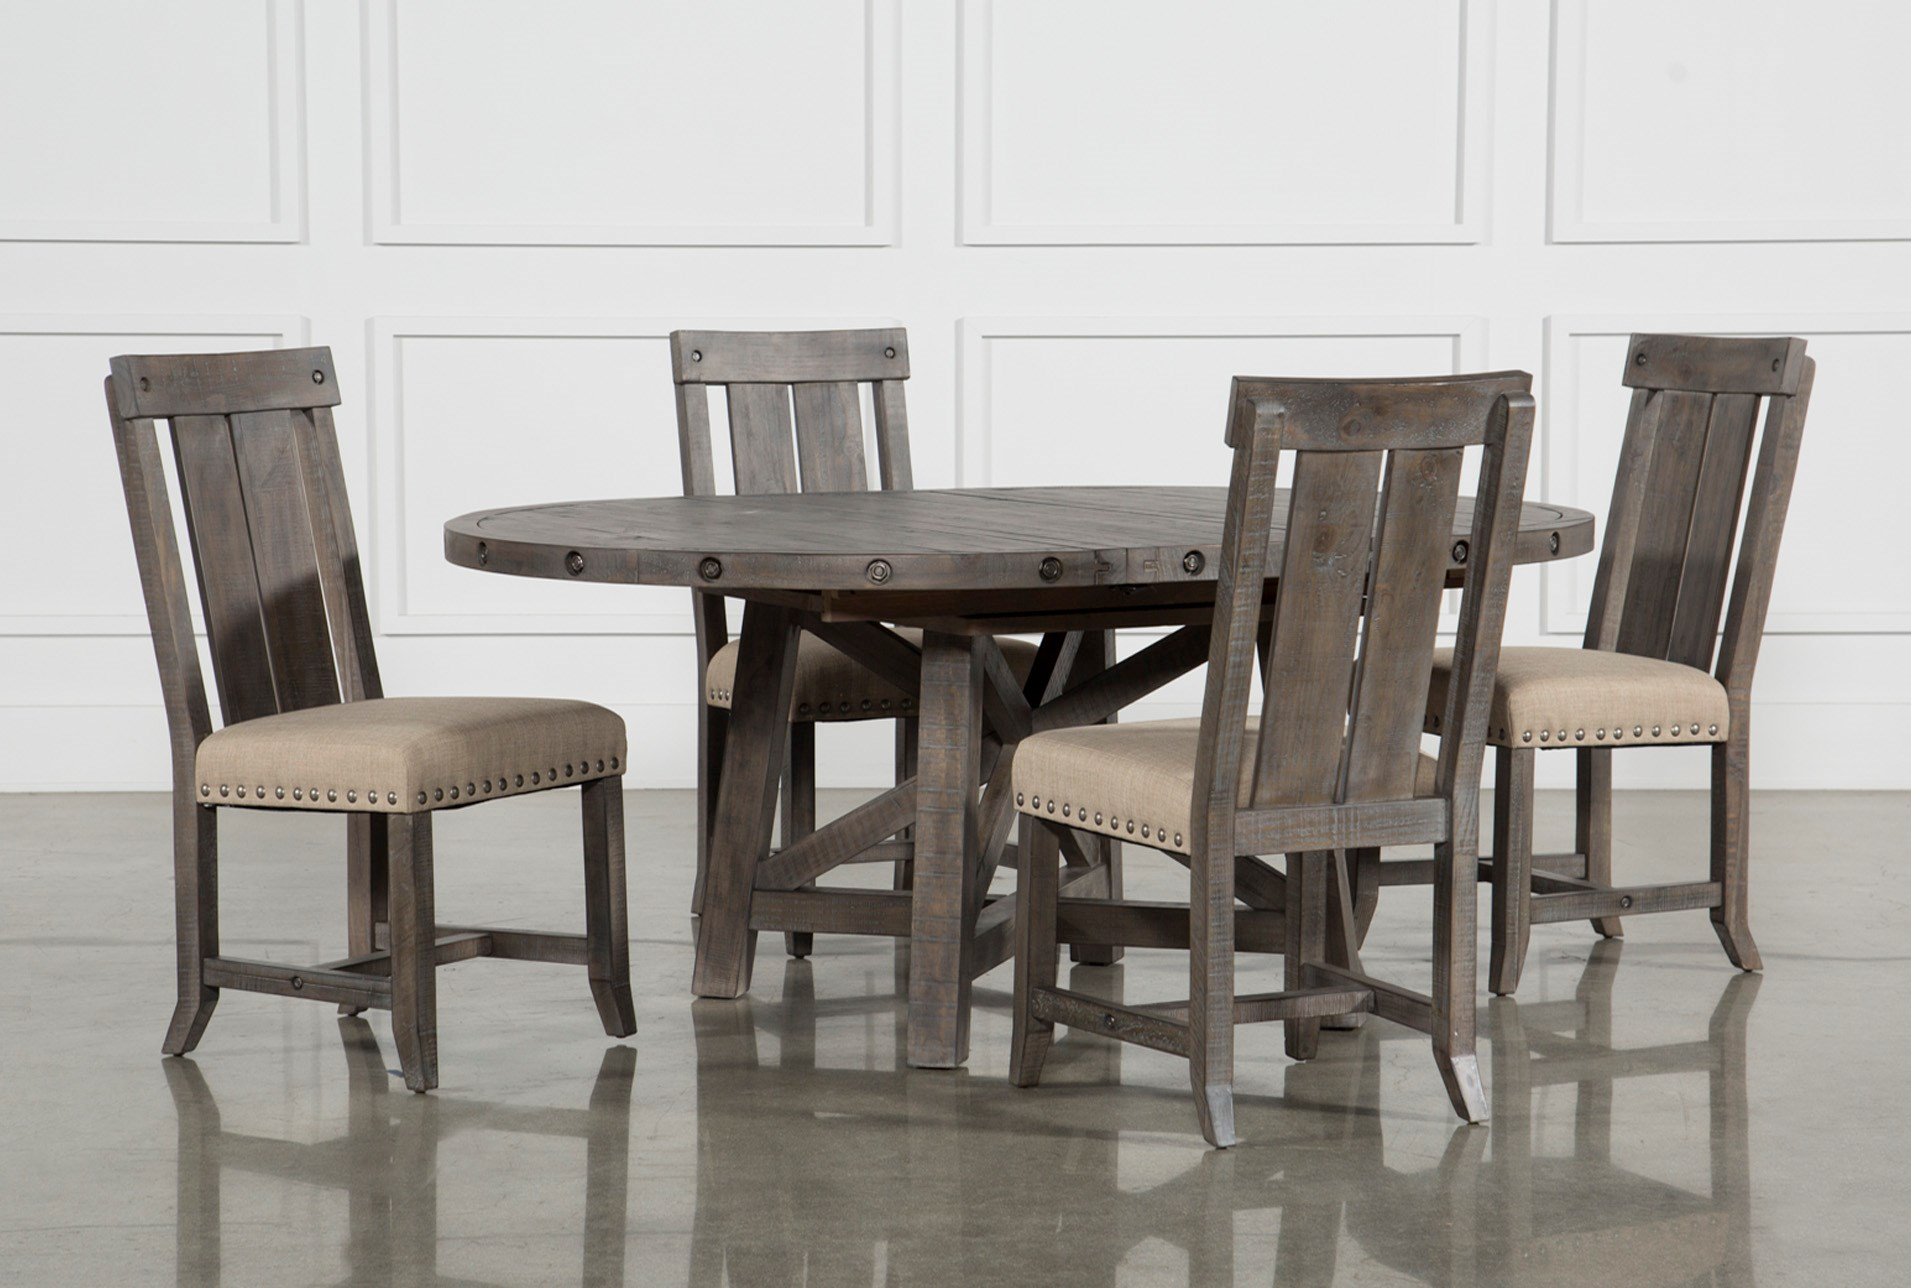 Grey Dining Room Table Sets: Jaxon Grey 5 Piece Round Extension Dining Set W/Wood